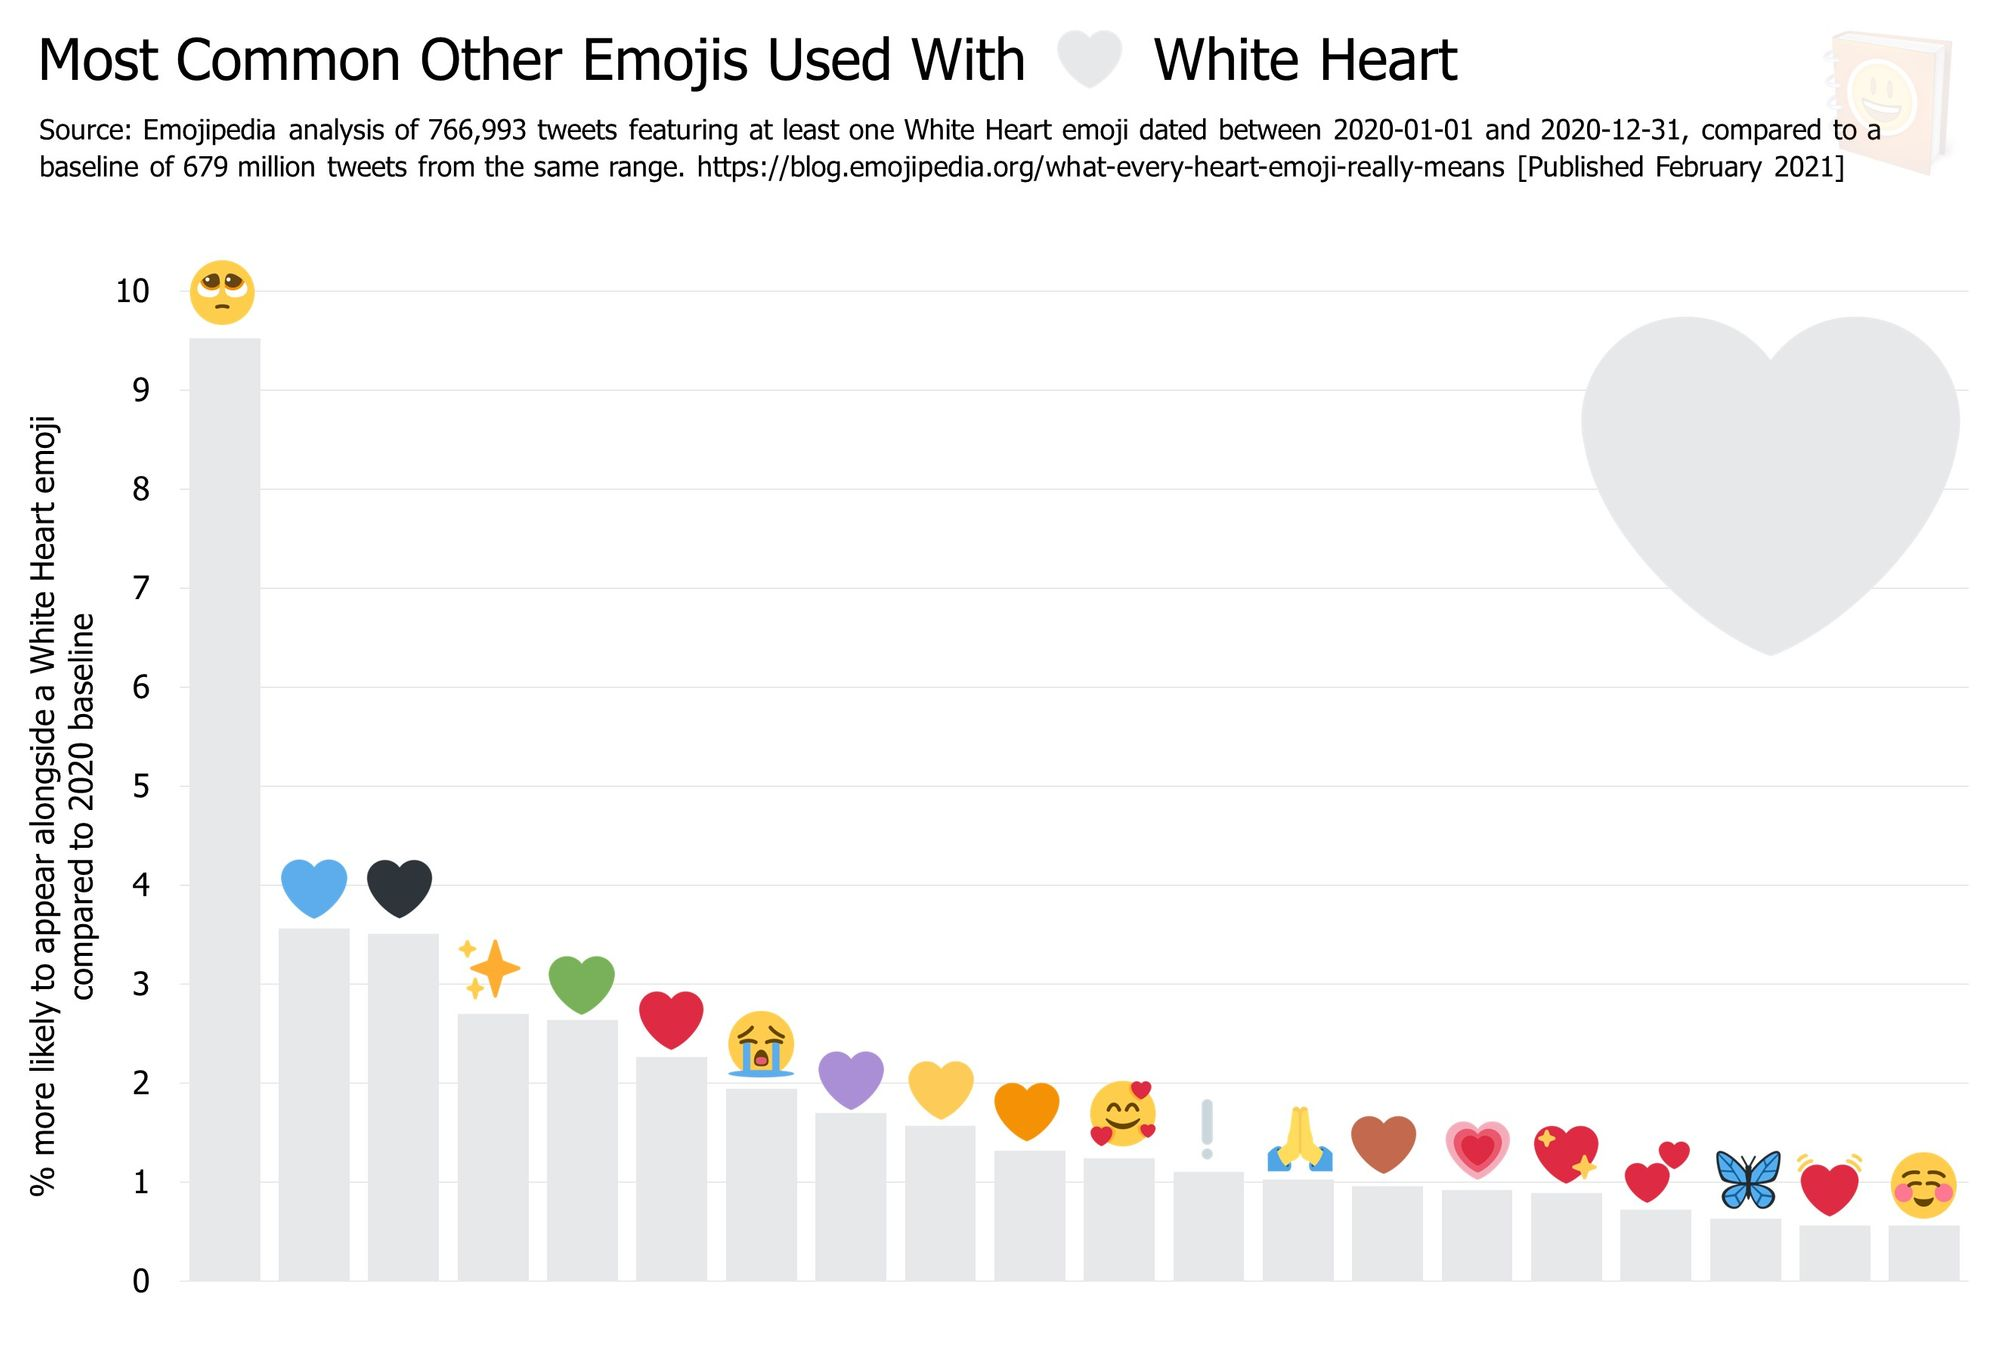 Emojipedia-Blog---What-Every-Heart-Emoji-Really-Means---Most-Common-Other-Emojis-Used-With-------White-Heart